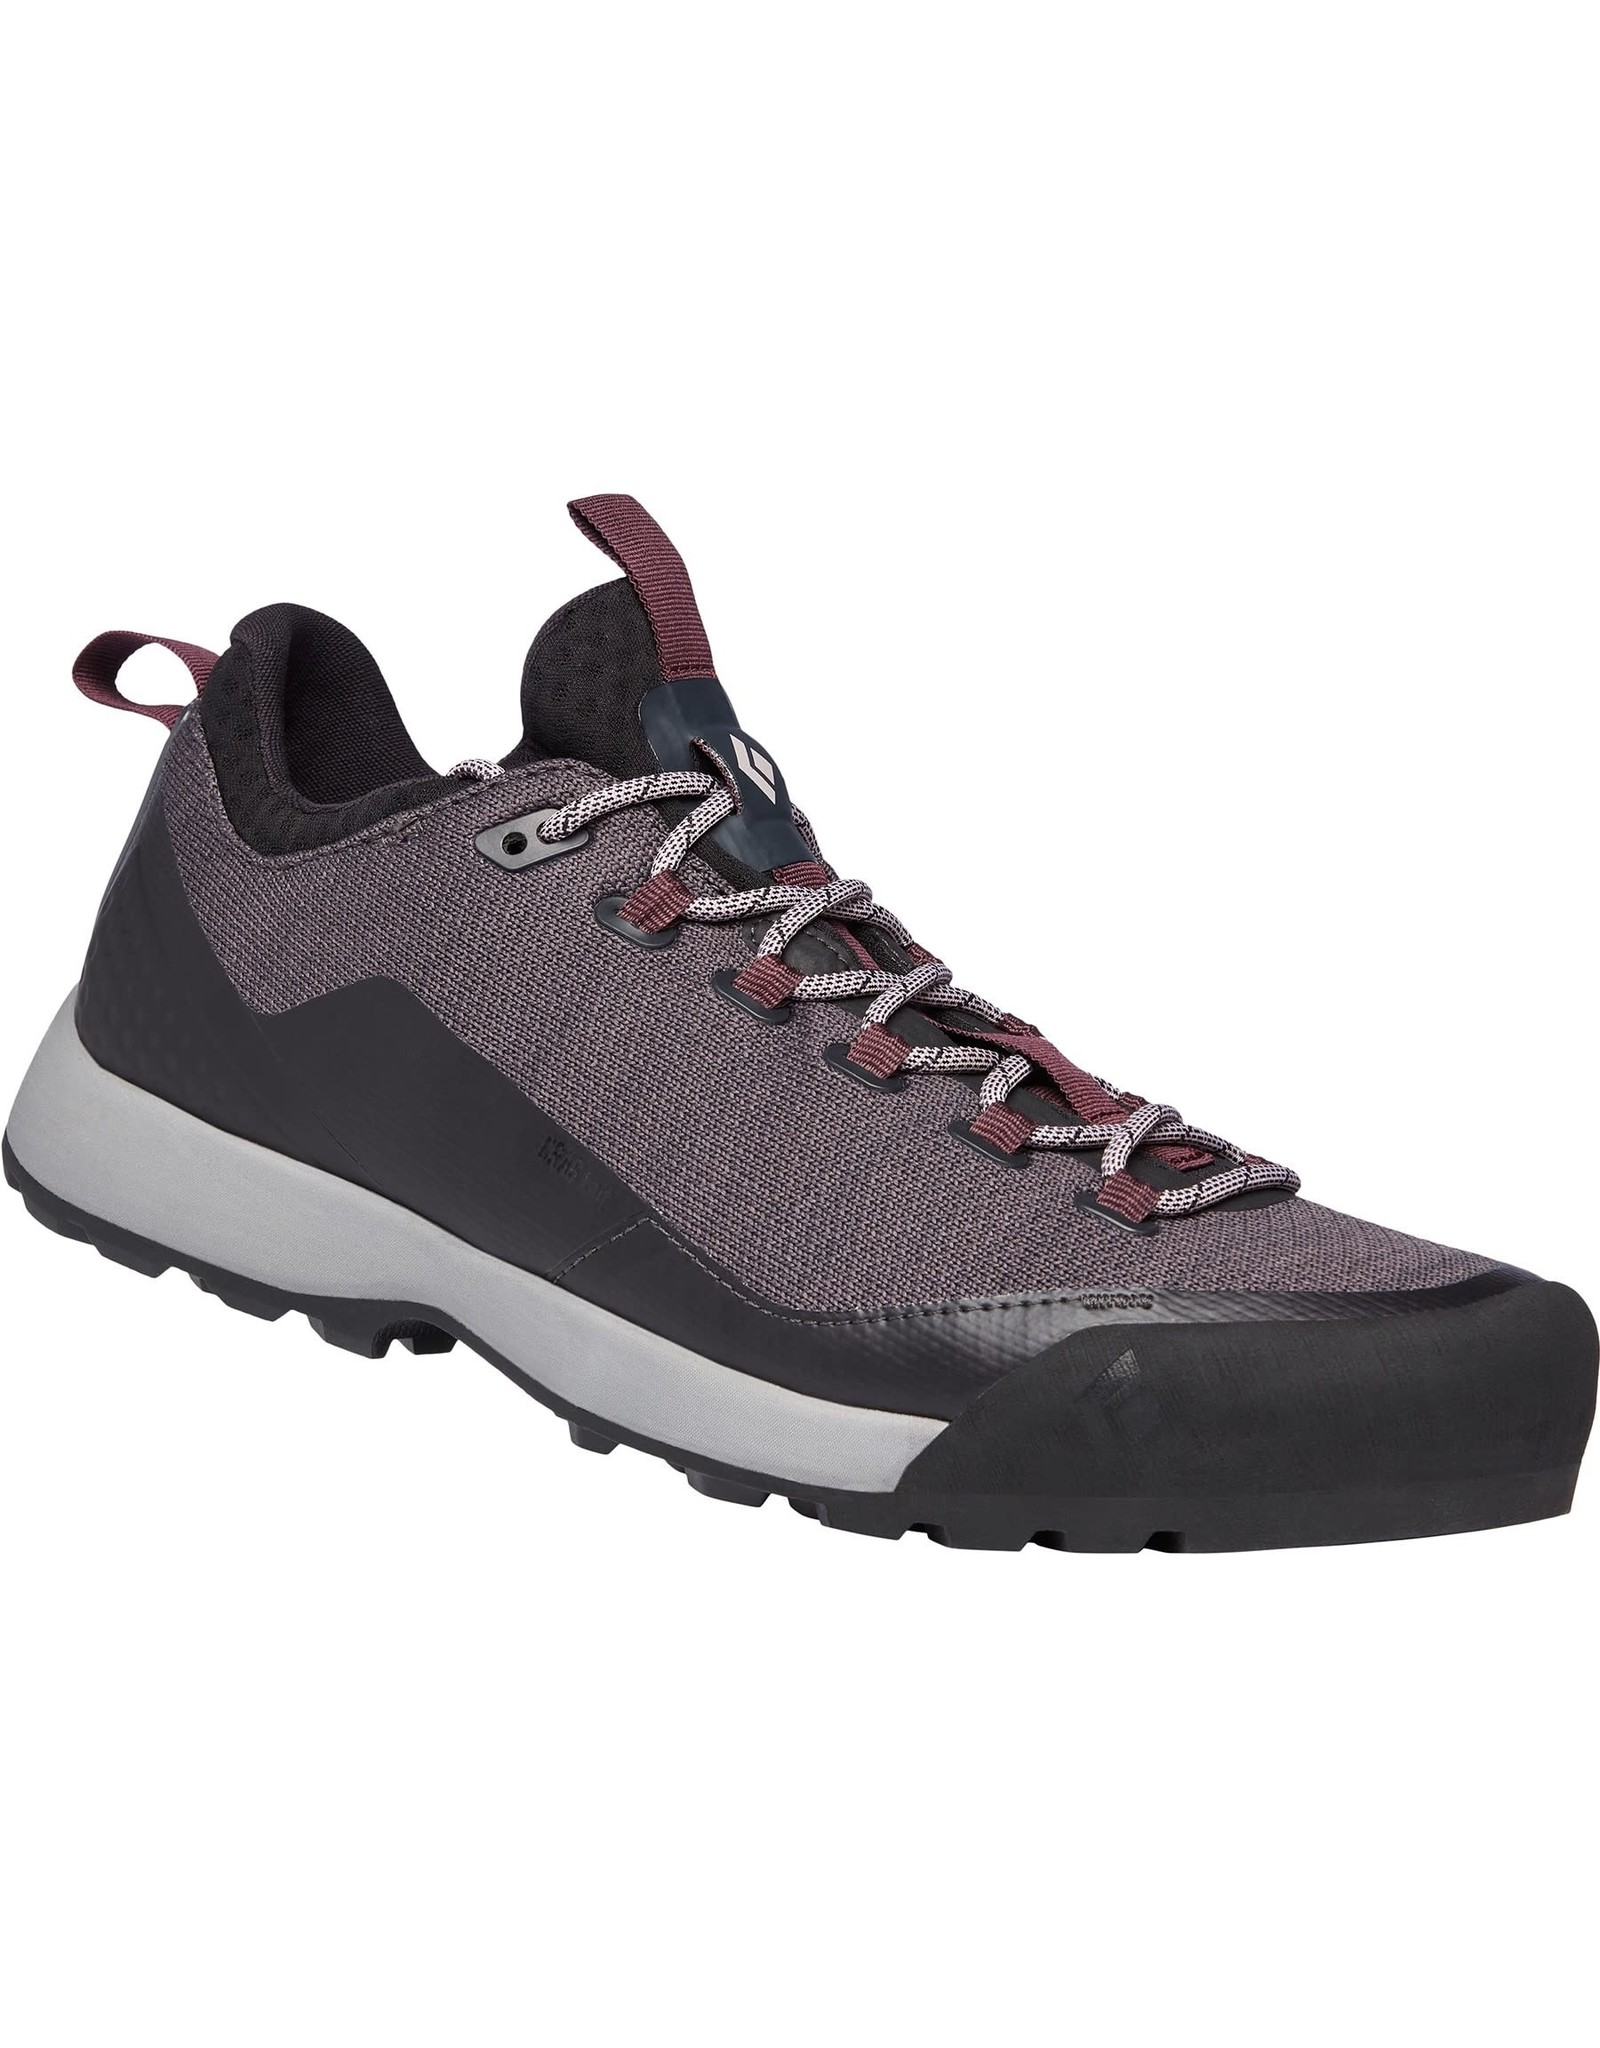 Black Diamond Black Diamond Mission LT Approach Shoes - Women